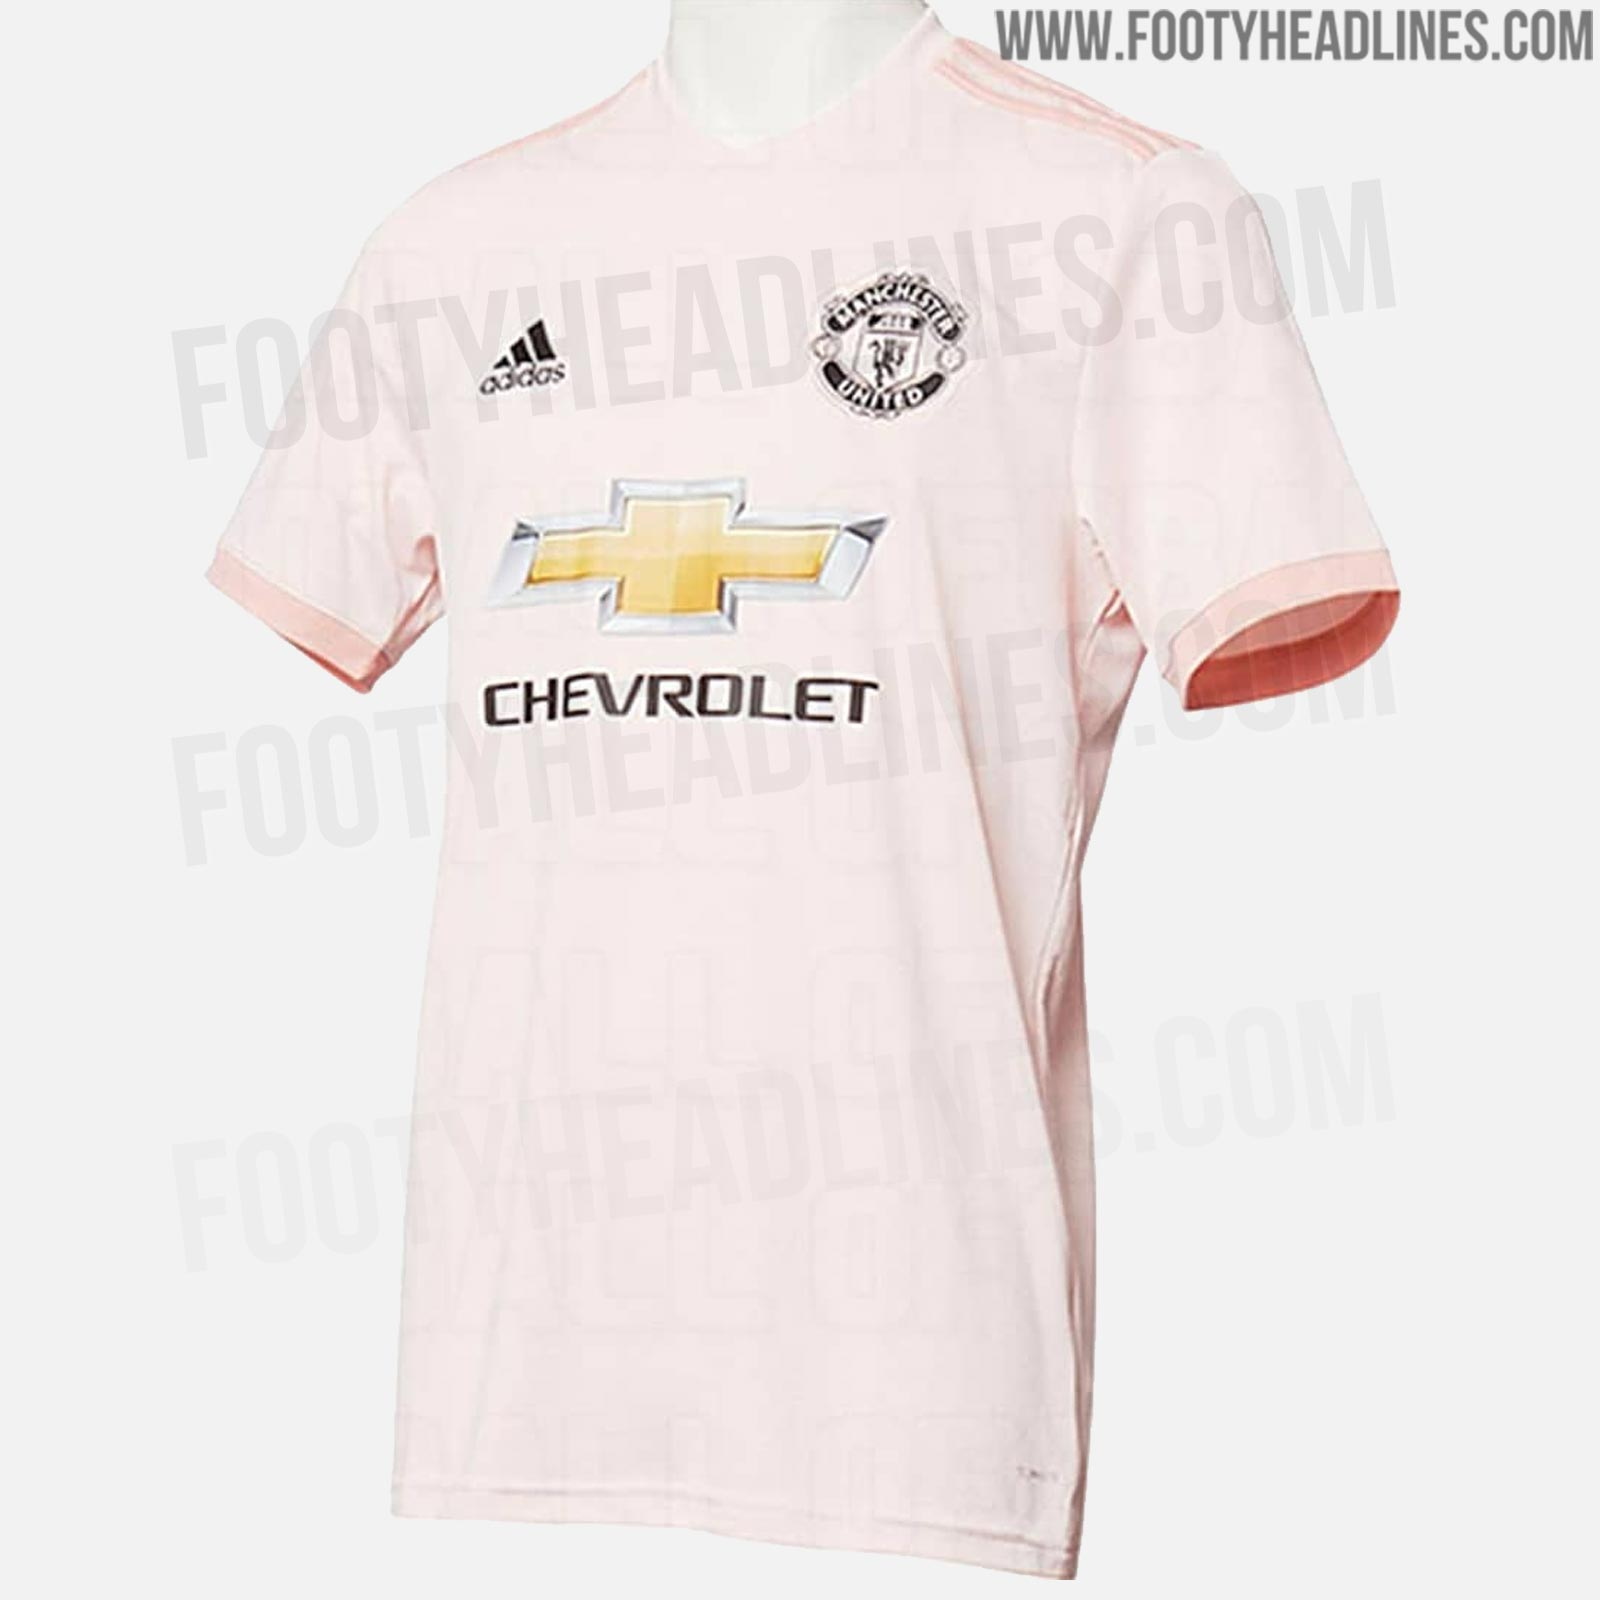 419e2d2ea Update  A new picture of the Manchester United 18-19 away kit has been  leaked. It shows the home and away kits.